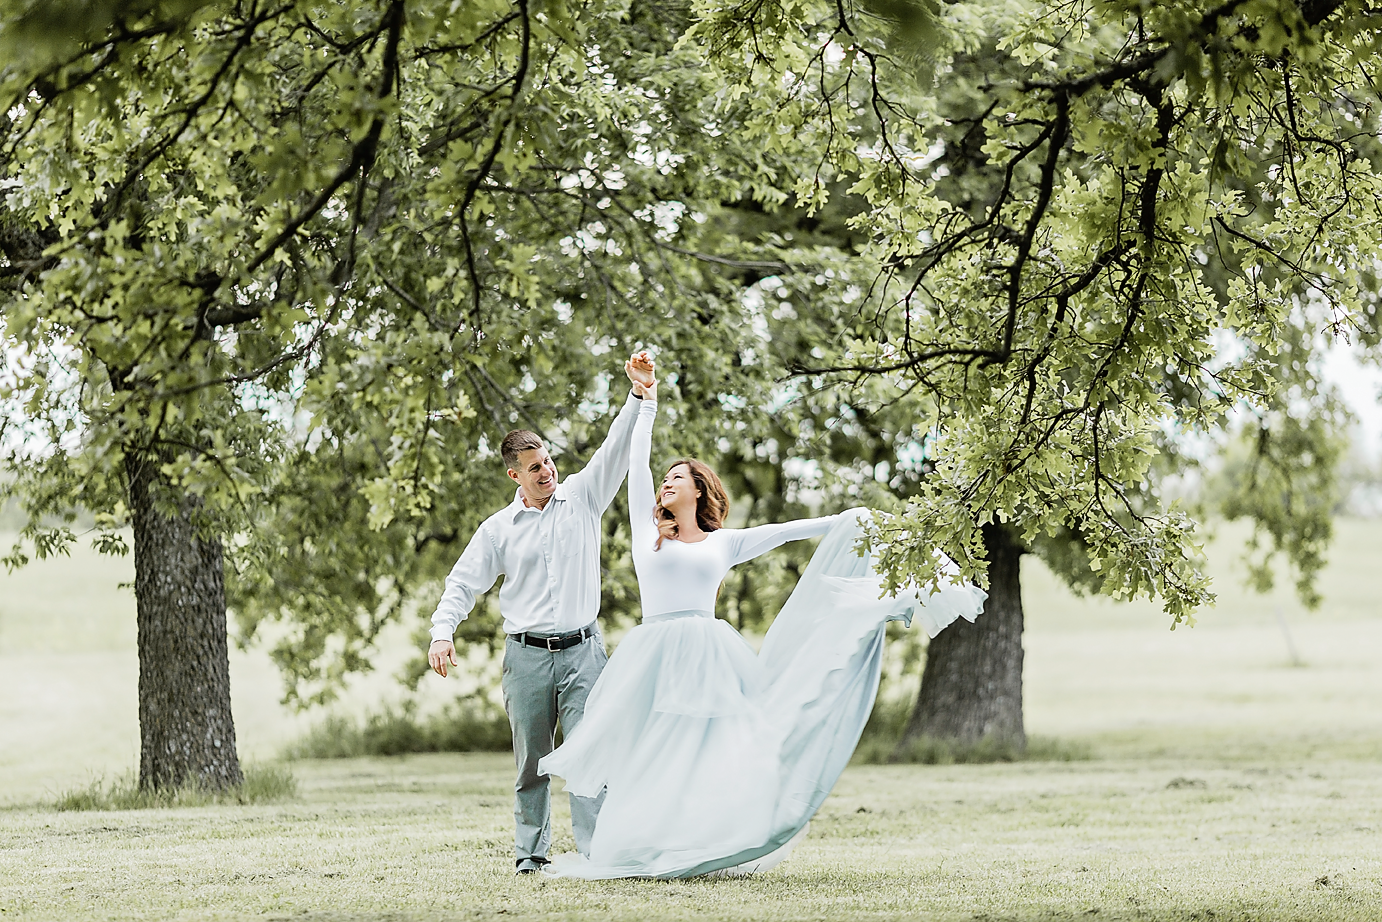 Dallas Wedding Photographer Flower Mound anniversary Photographer Kim Brett Texas Ranch Kate Marie Portraiture 5.png